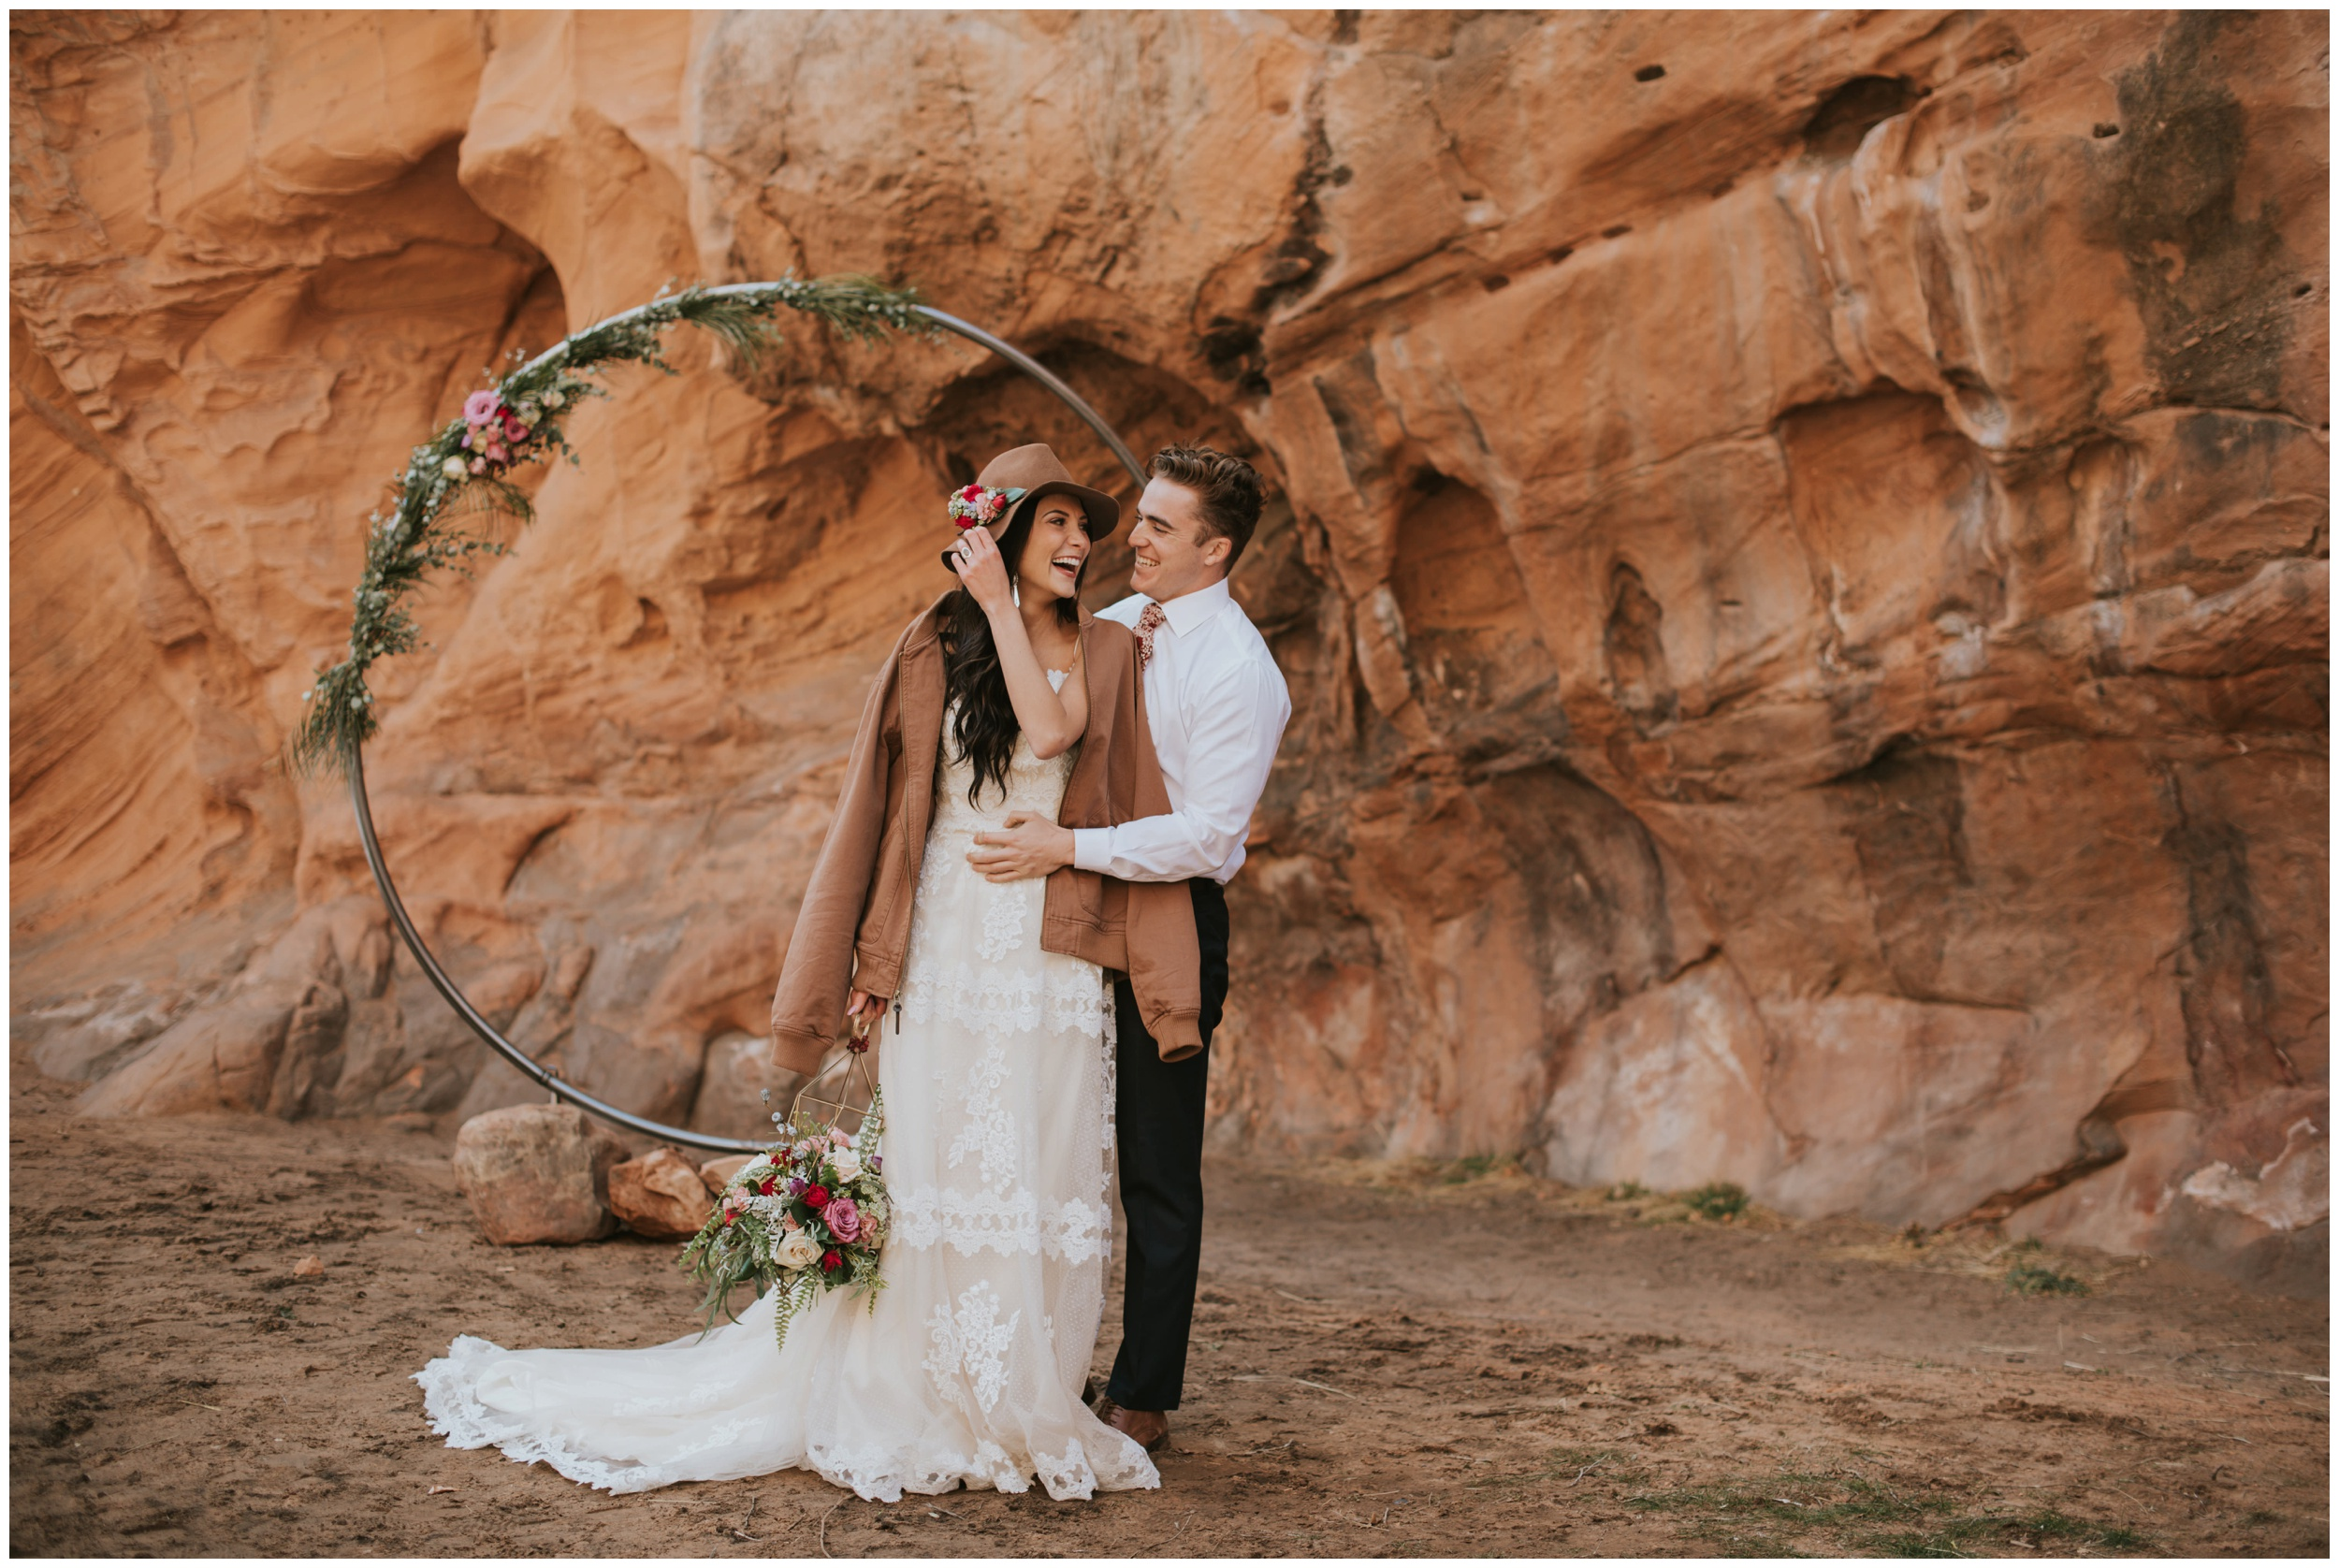 redrockutah-idahophotographer-utahphotographer-wedding-45.jpg